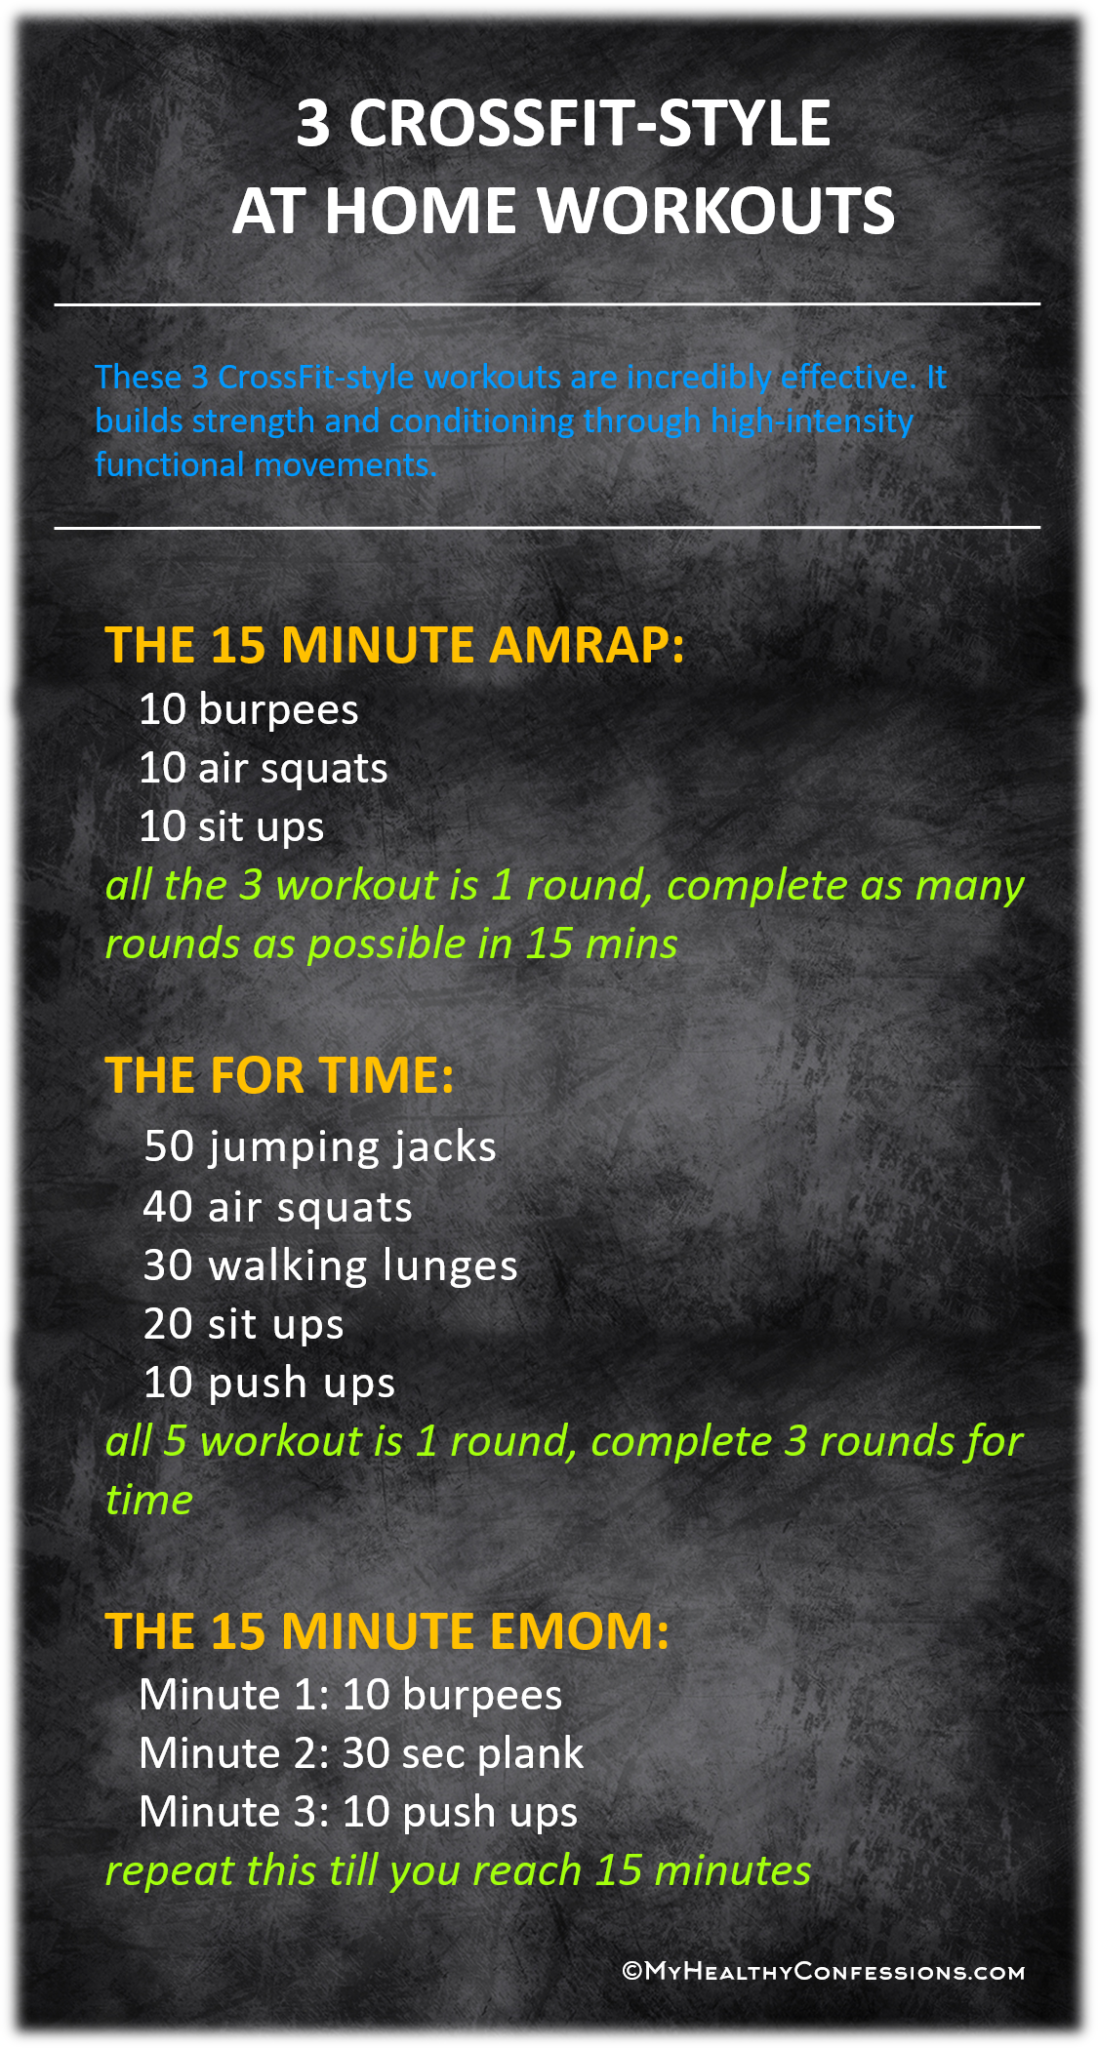 CROSSFIT-STYLE WORKOUTS: AMRAP, FOR TIME AND EMOM - myhealthyconfessions